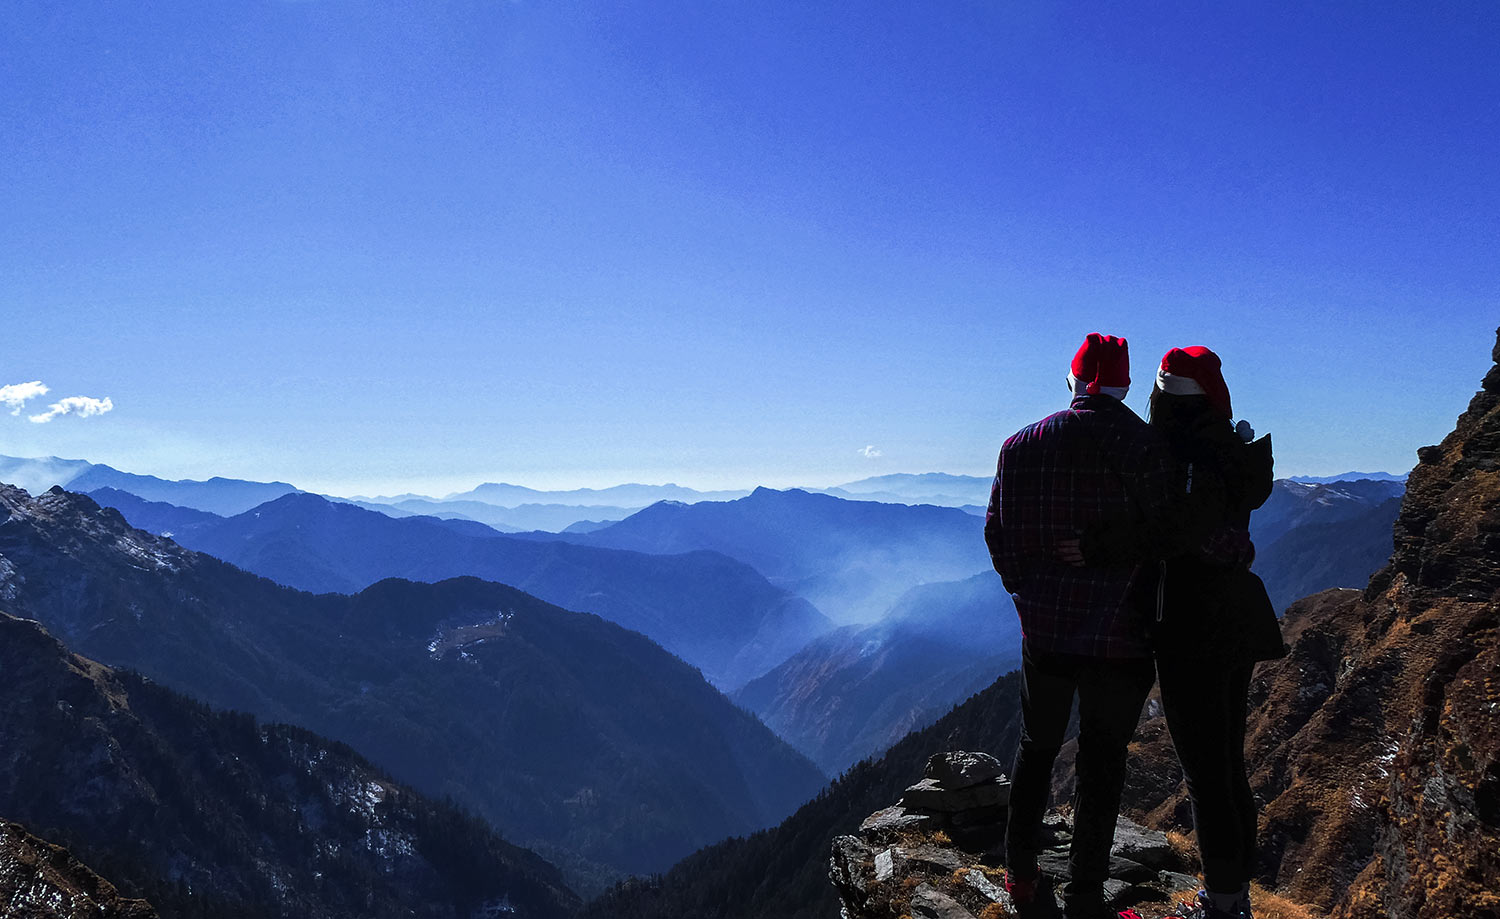 The best Himalayan travel adventure on earth: 3 day Kuari Pass Trek. Two people look out over The Himalayn view from the peak of the Kuari pass